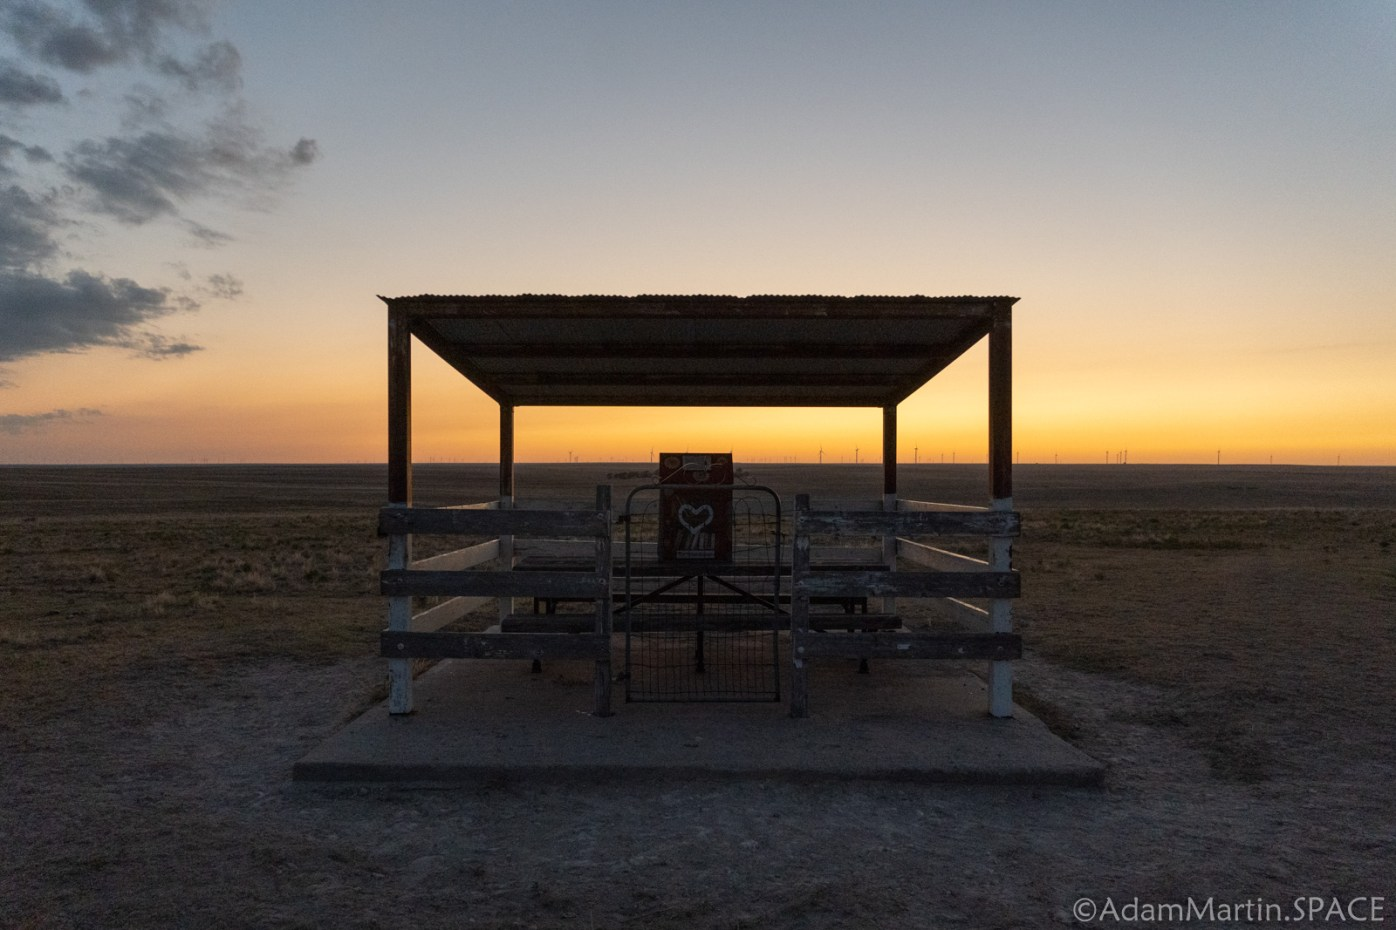 Mount Sunflower - Picnic Shelter and Little Free Library at Sunset